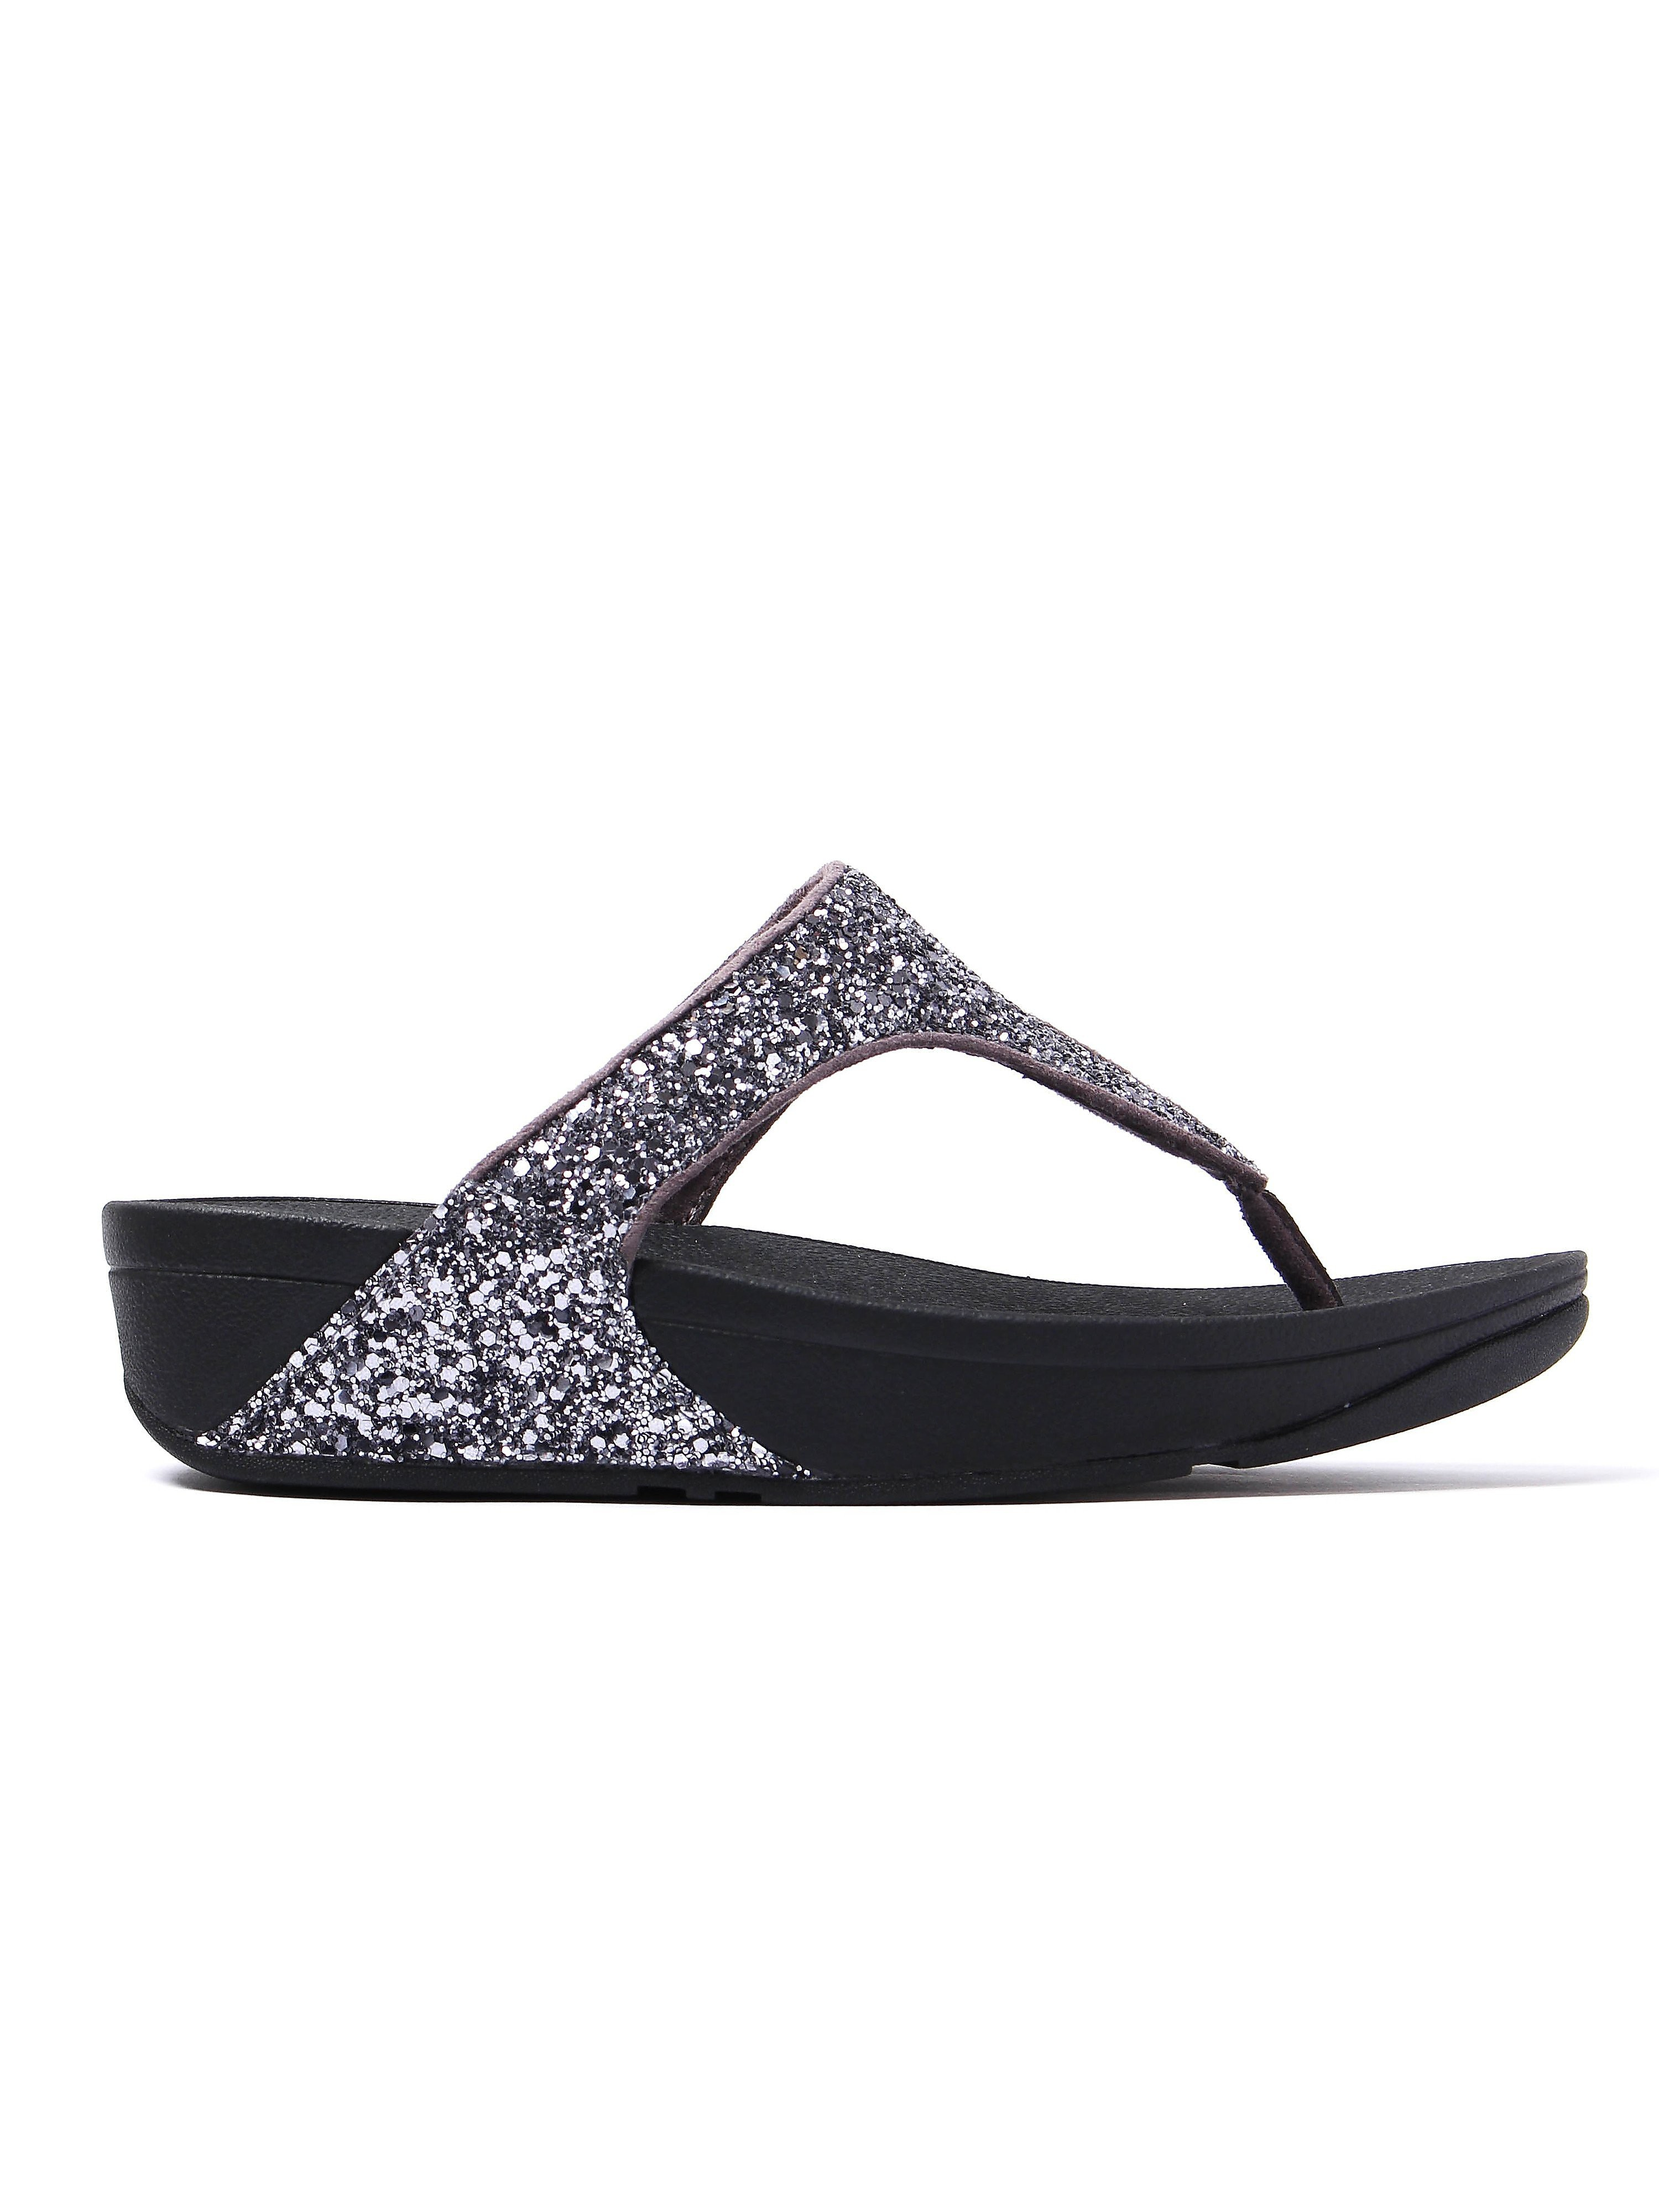 FitFlop Women's Glitterball Toe-Post Sandals - Pewter